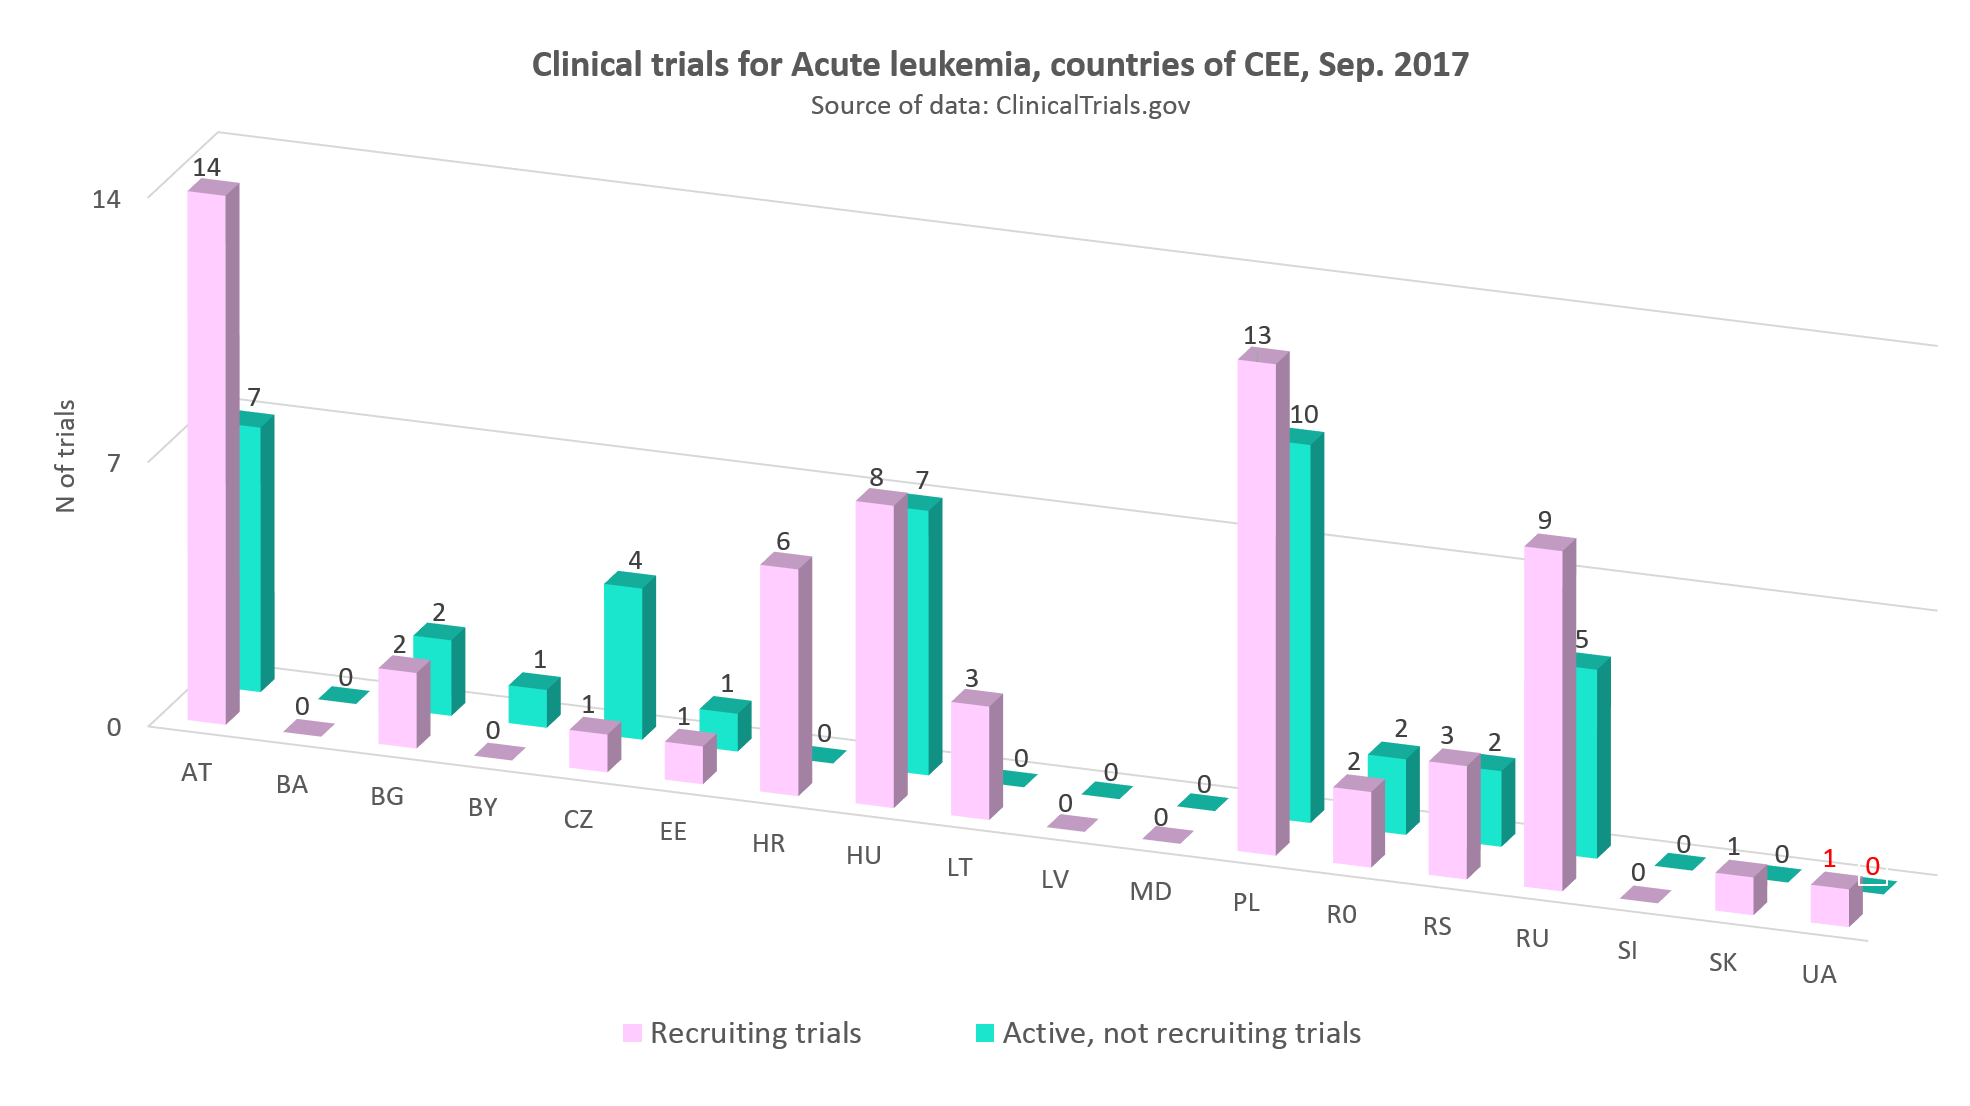 Clinical trials for acute leukemia in the countries of CEE, September 2017